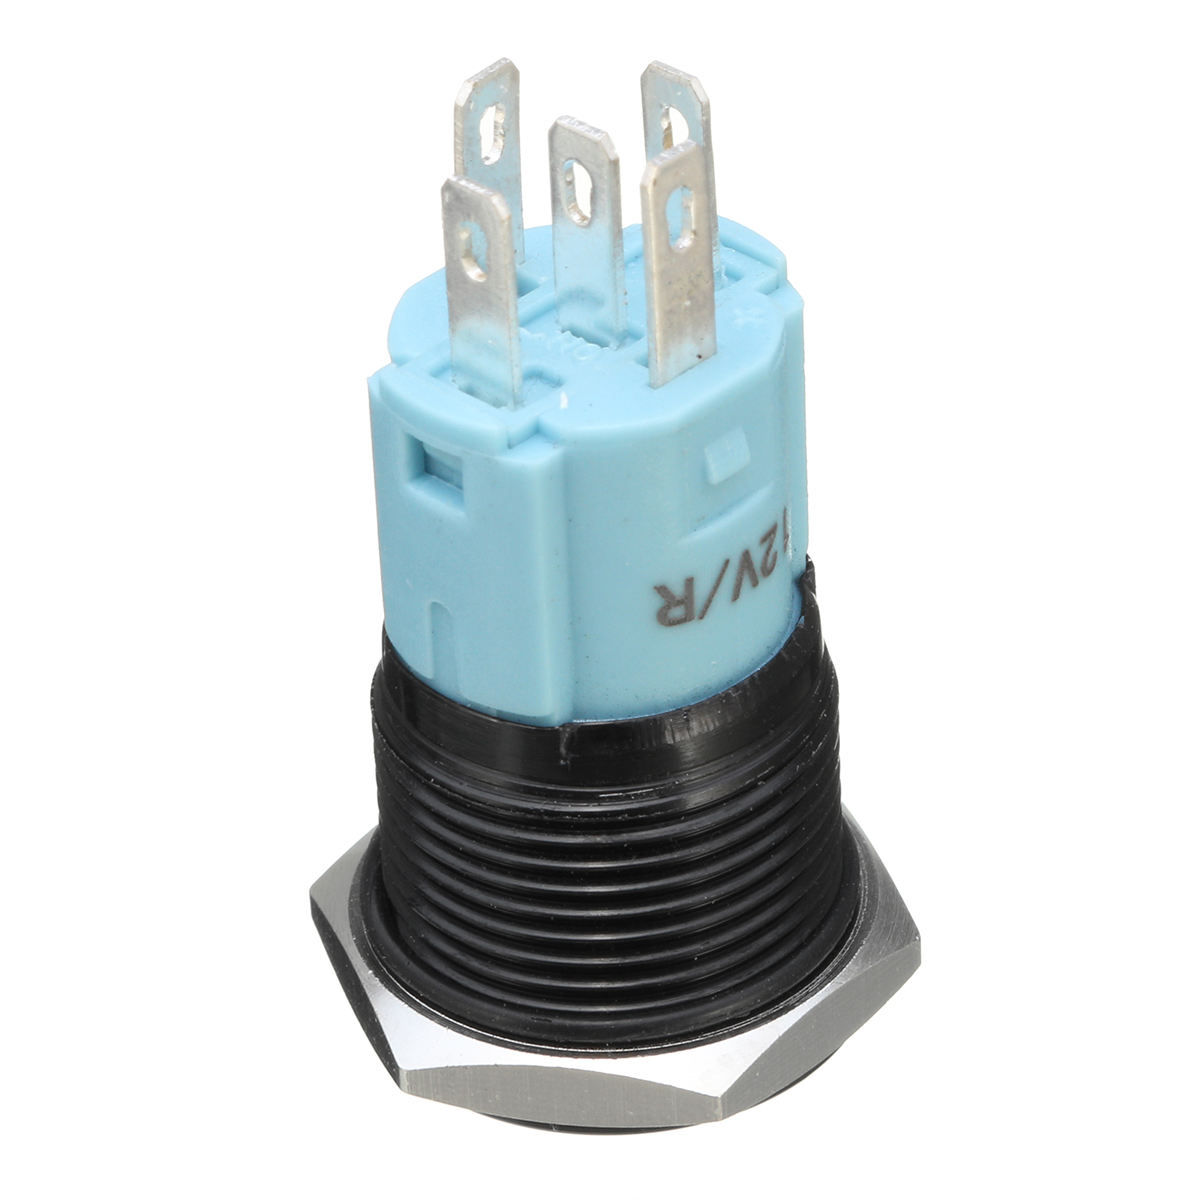 12V 5 Pin 16mm LED Light Metal Push Button Momentary Switch Waterproof